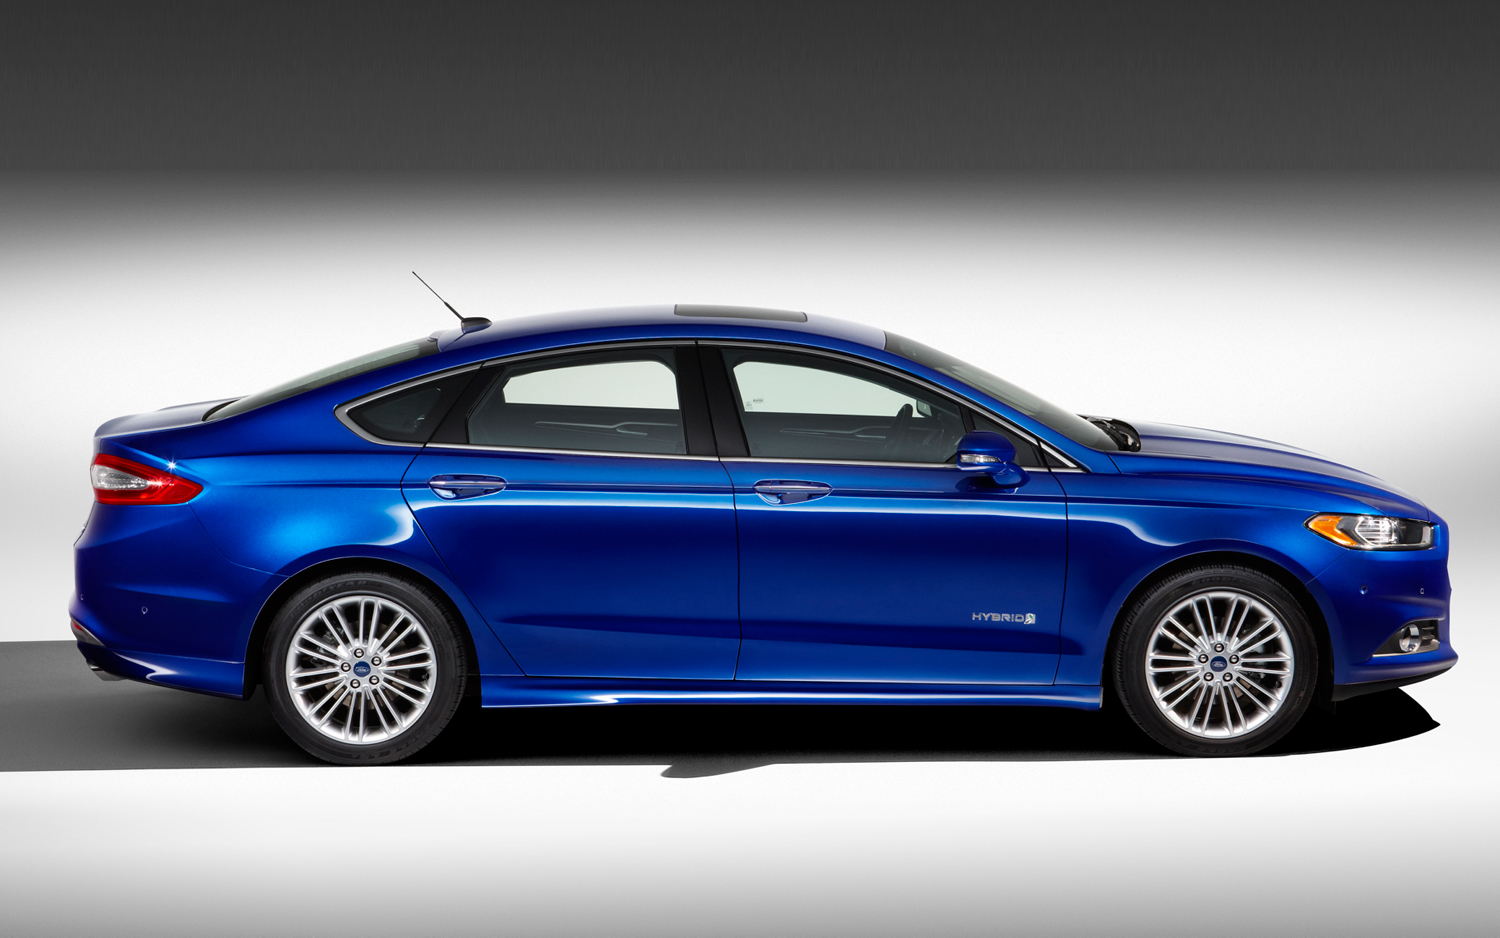 2013 FORD FUSION HYBRID - Image #19